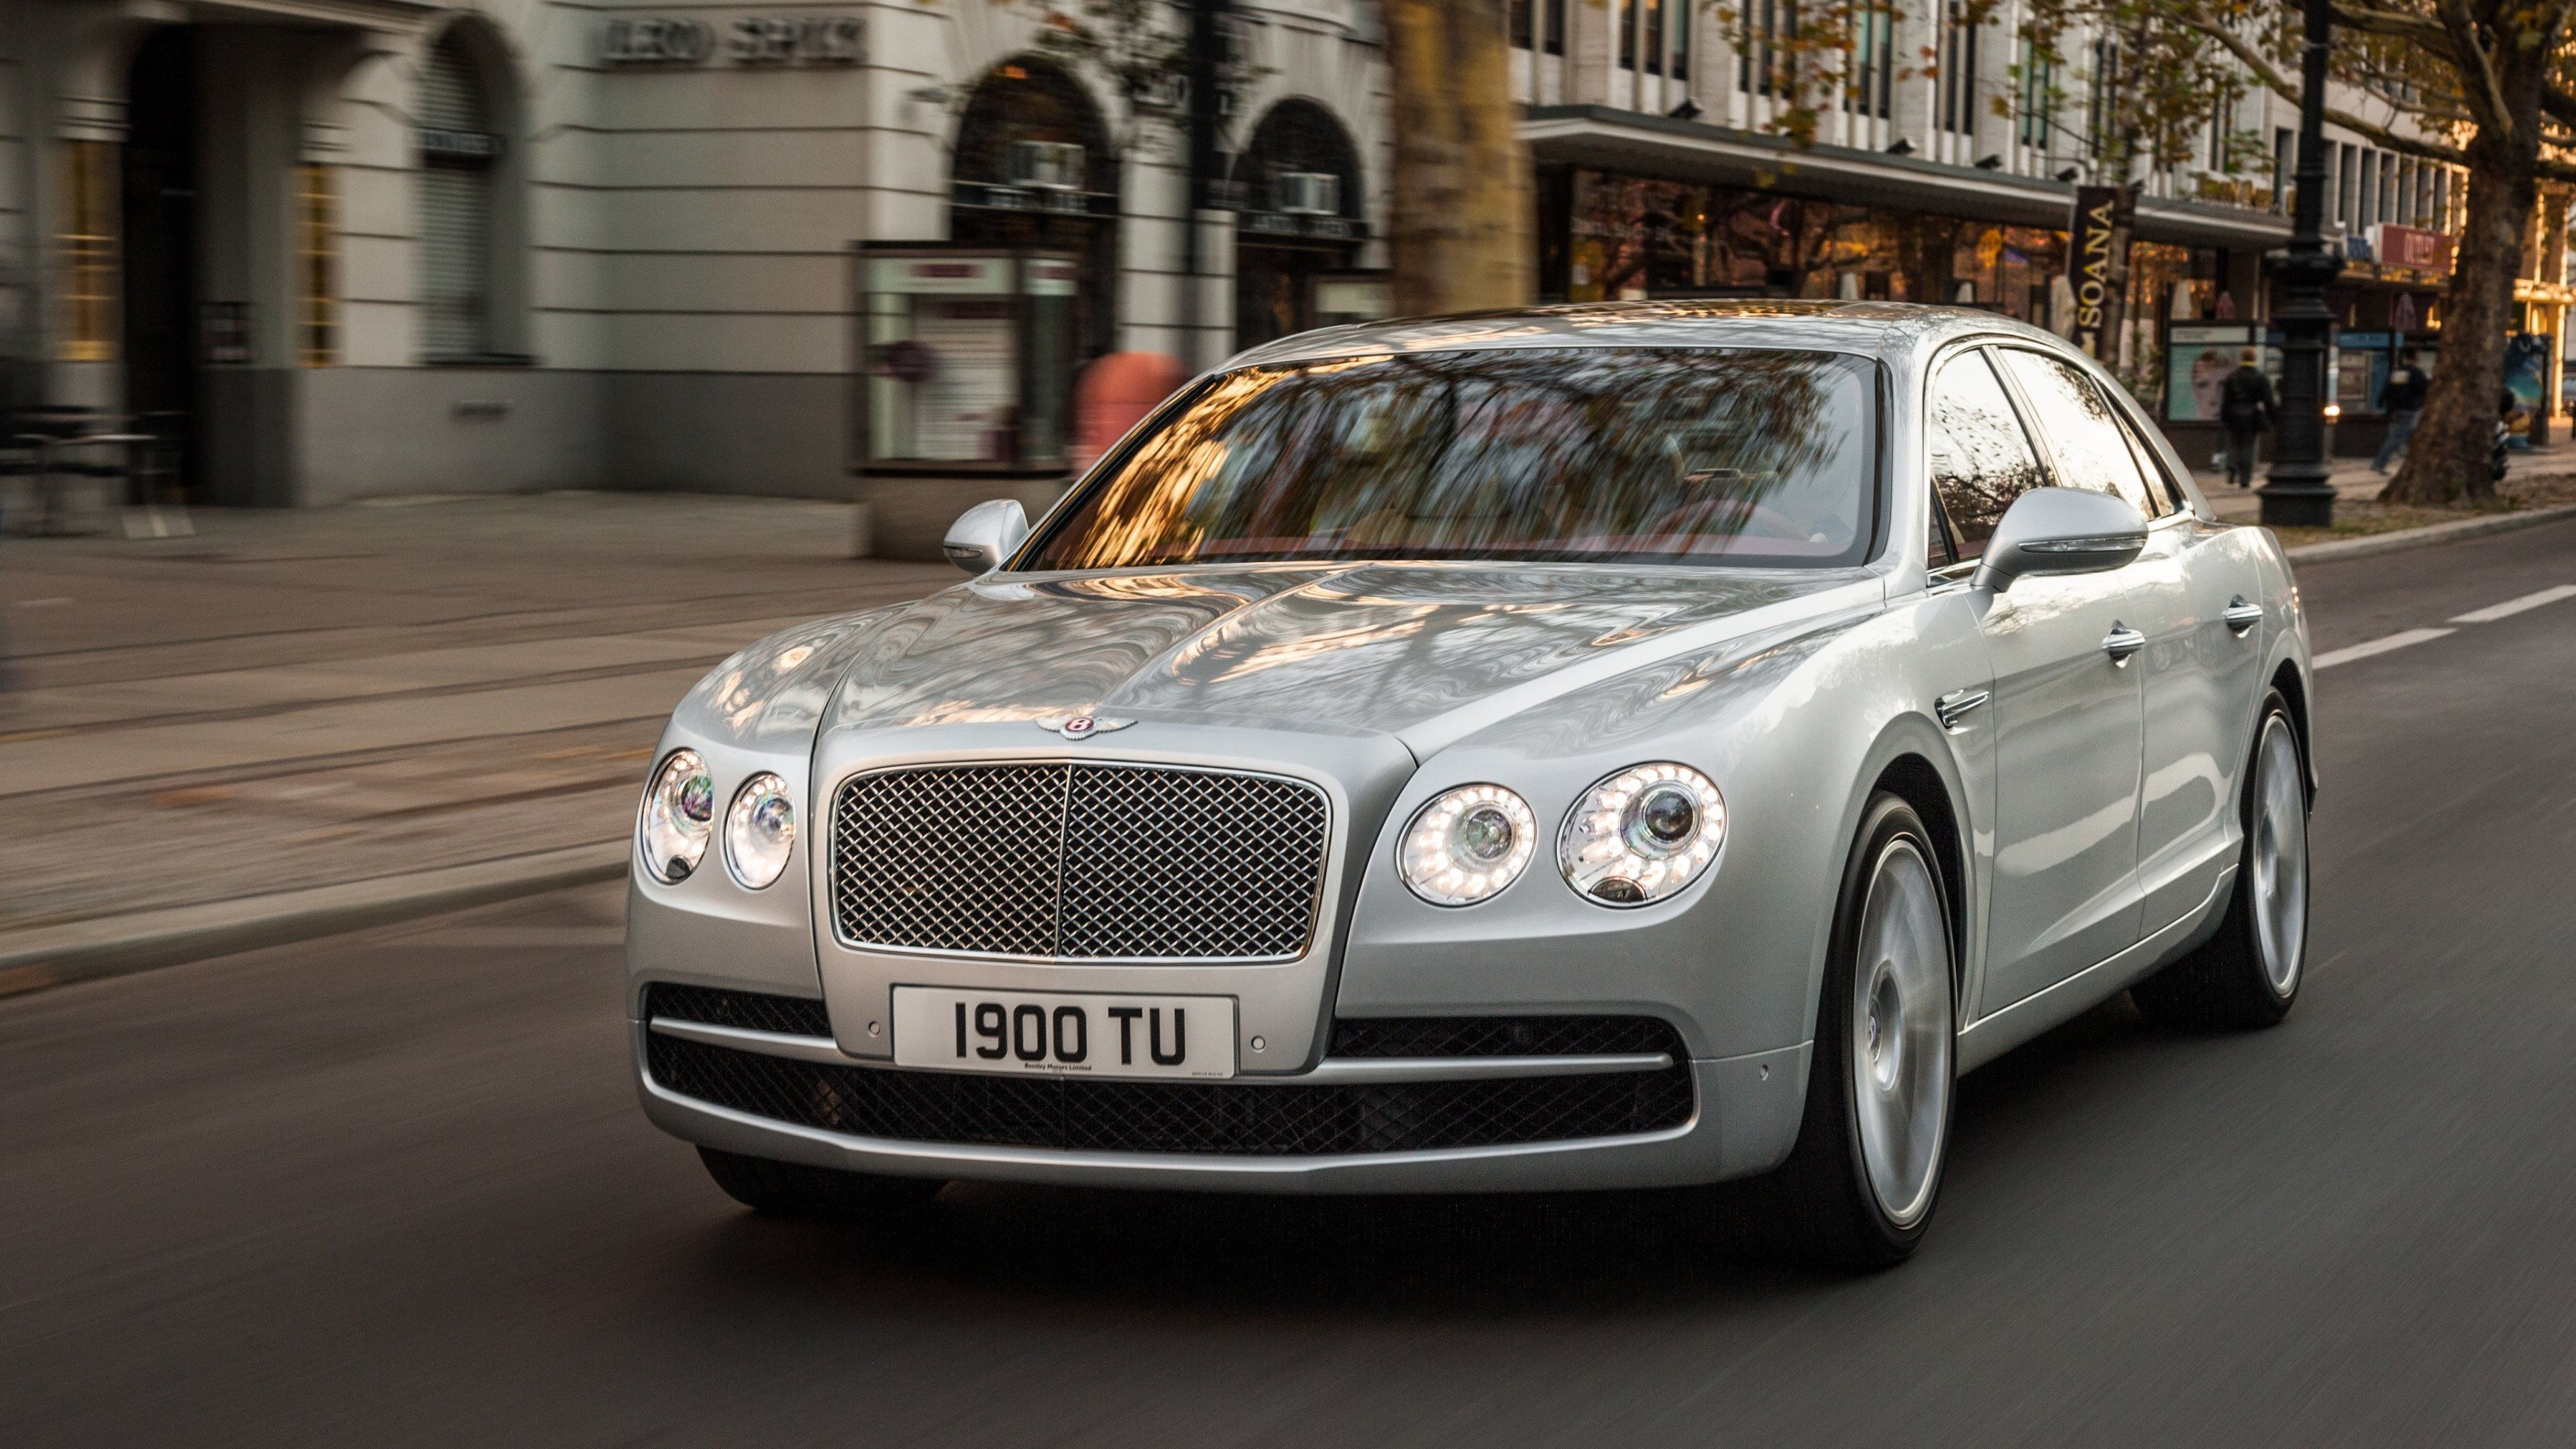 the bentley makes gt news develops for supersports horsepower car who back continental is photos